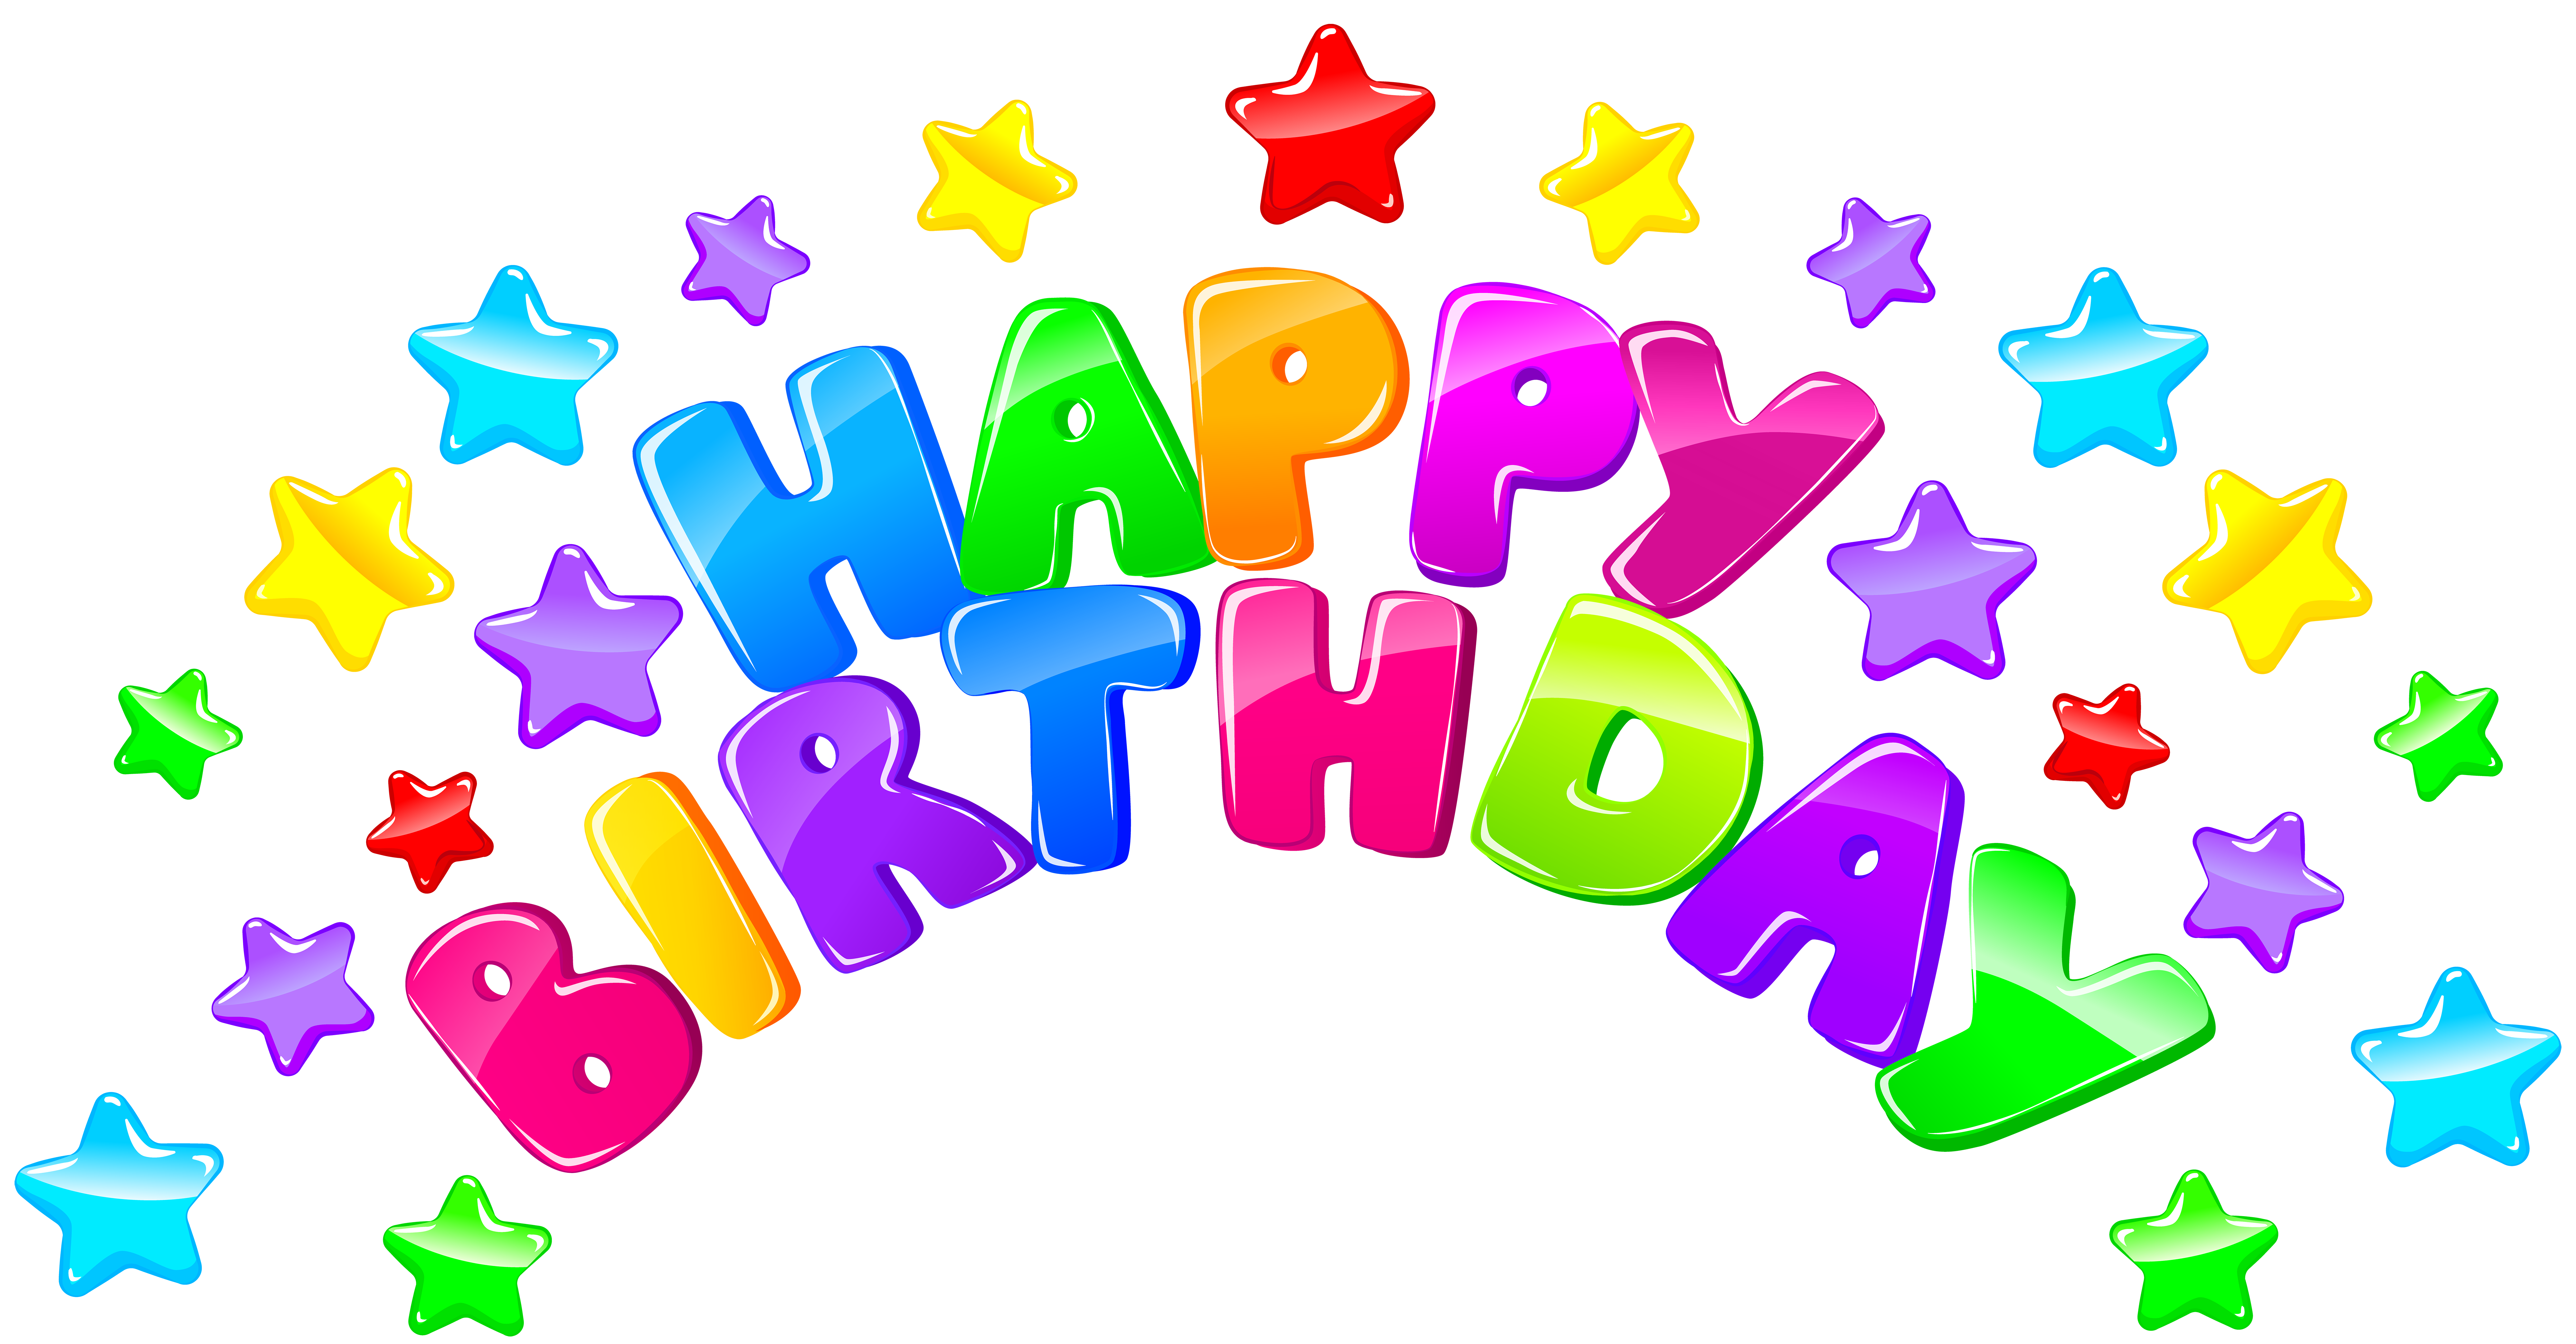 Happy Belated Birthday Images Transparent Png Clipart Free